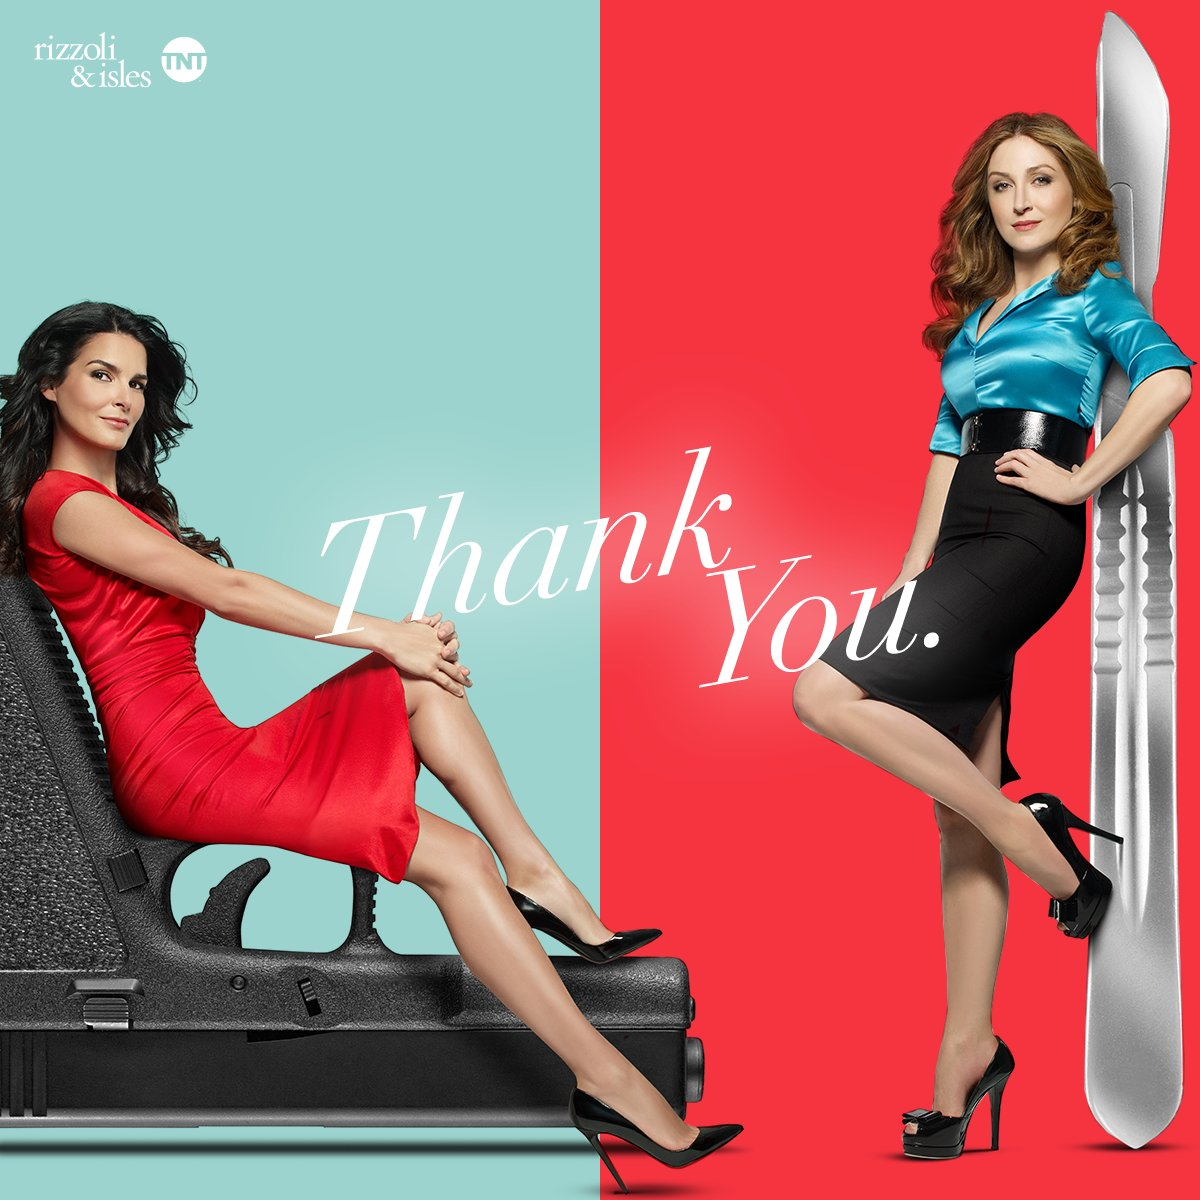 A big, heart-felt thank you to the best fans around. #RizzoliandIsles wouldn't have been what it was without you. https://t.co/M3kVES5sG0